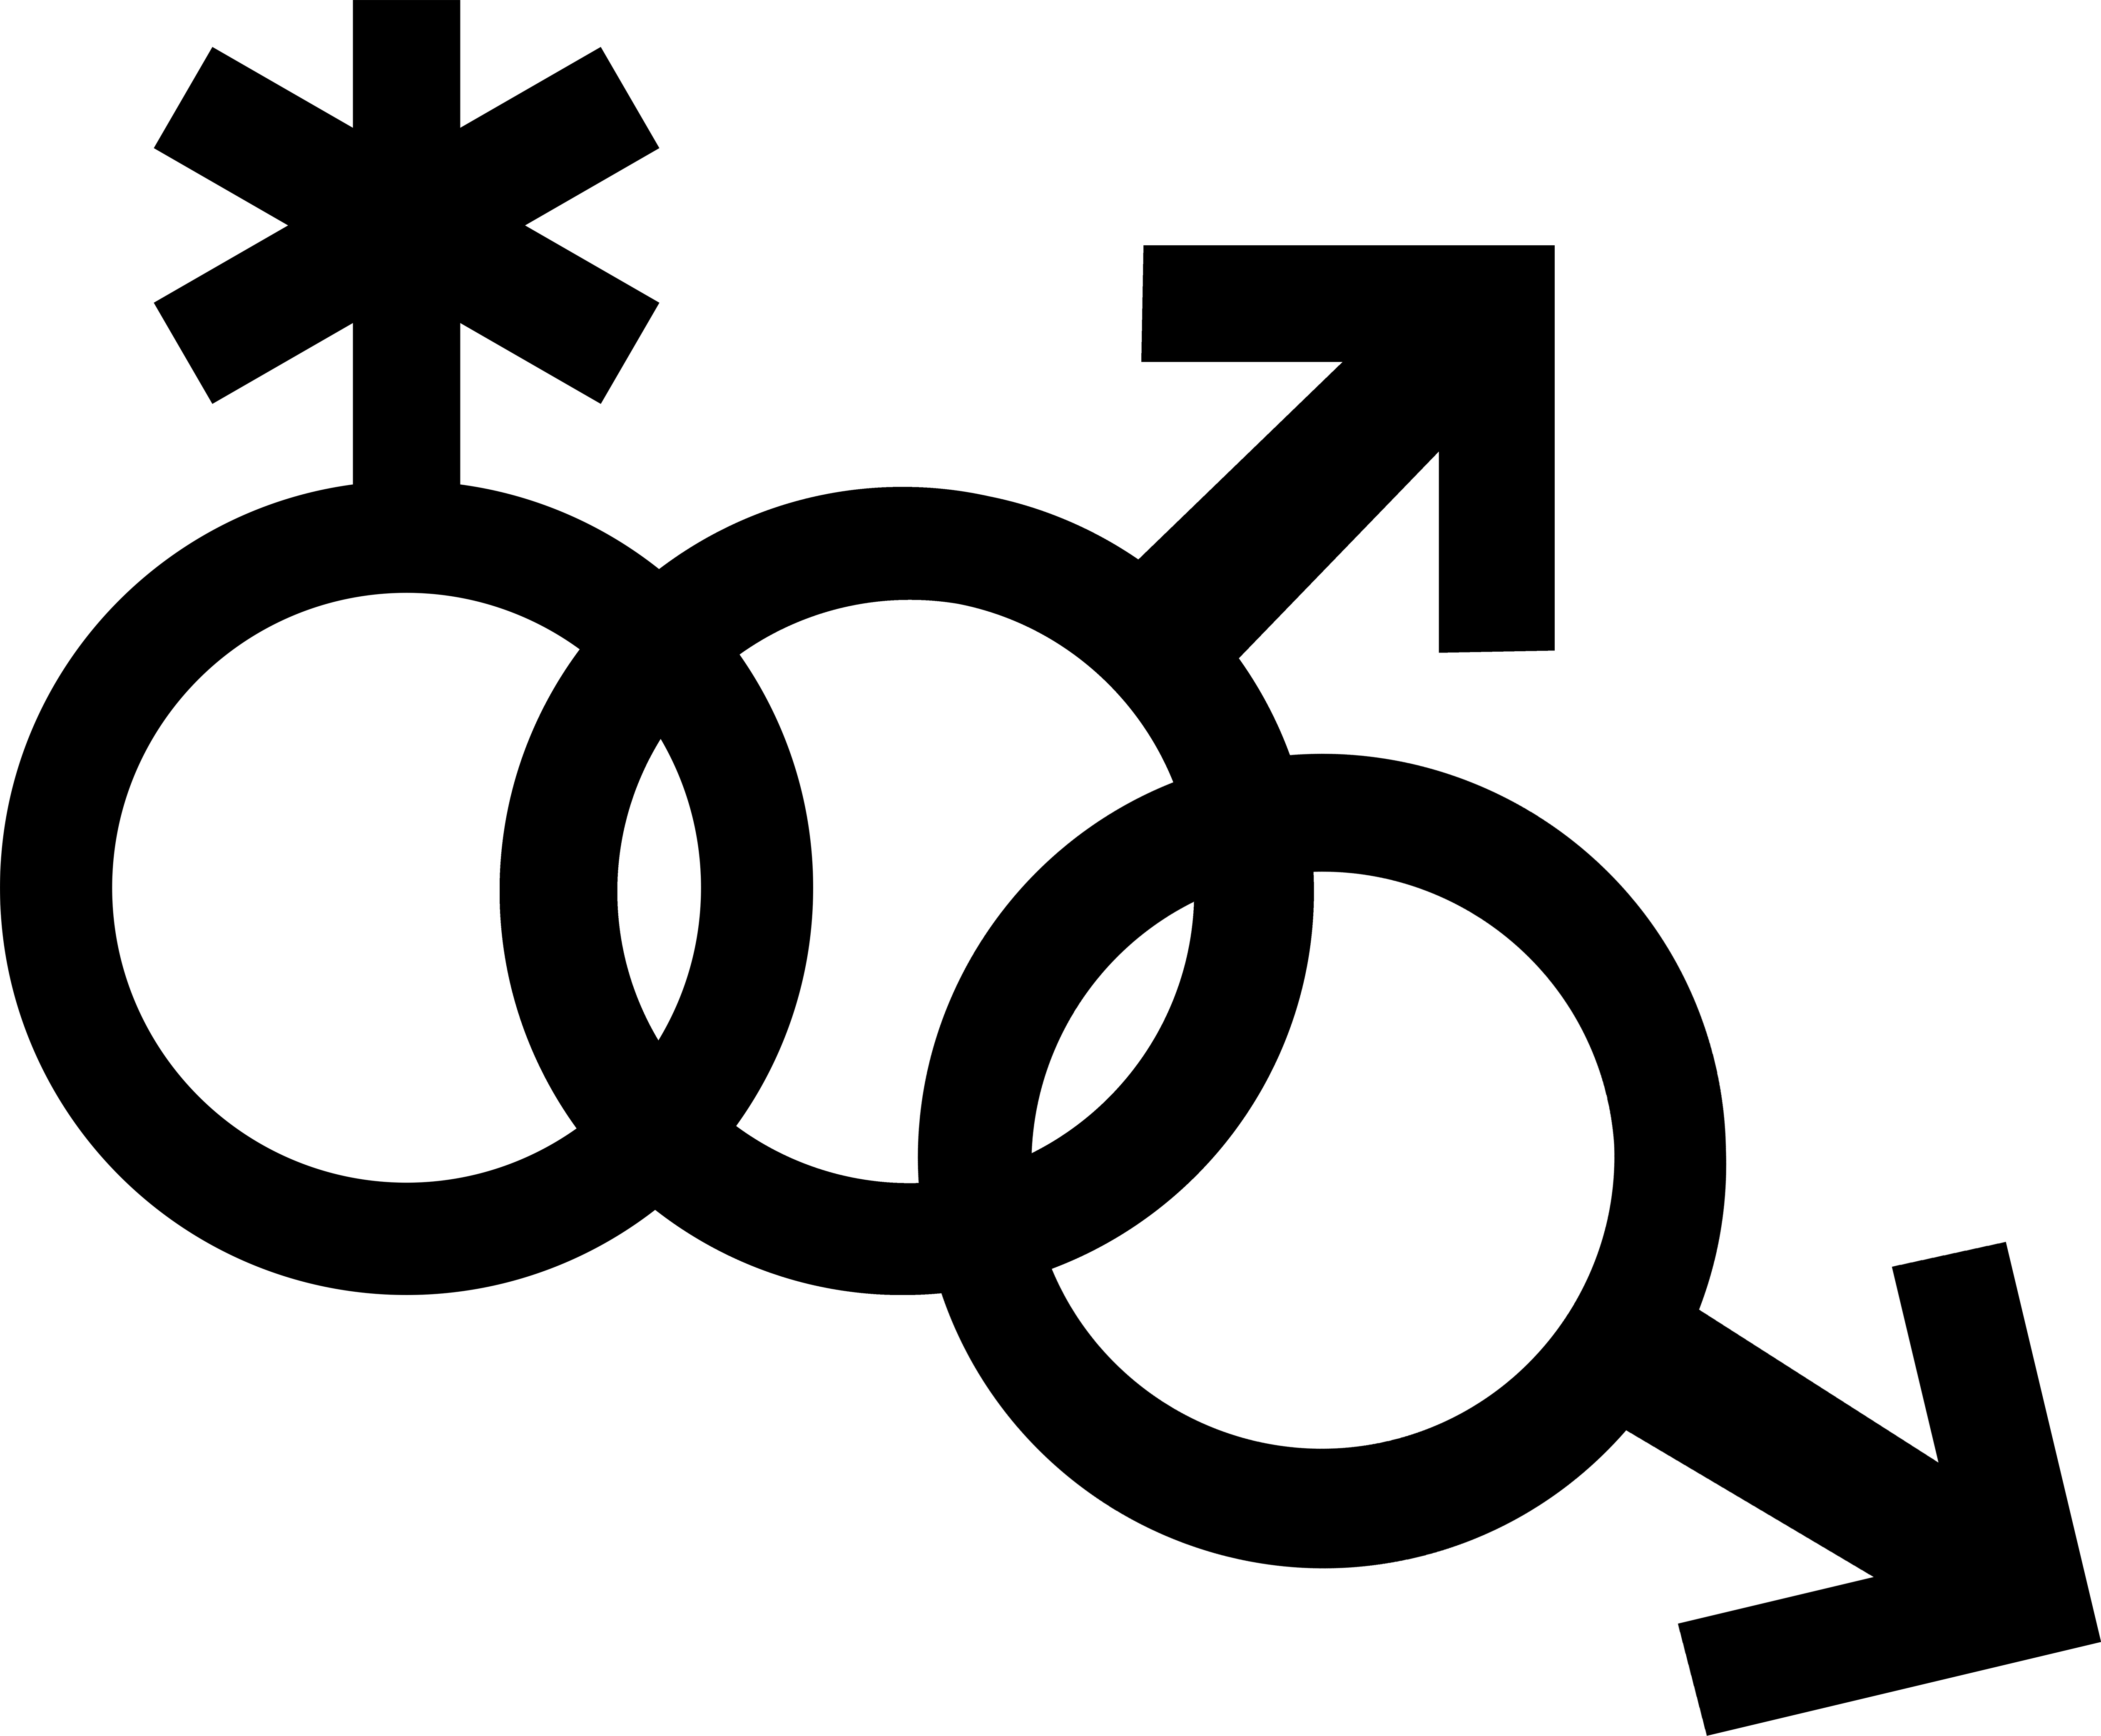 Mars symbol interlocked with a nonbinary symbol and another Mars symbol.